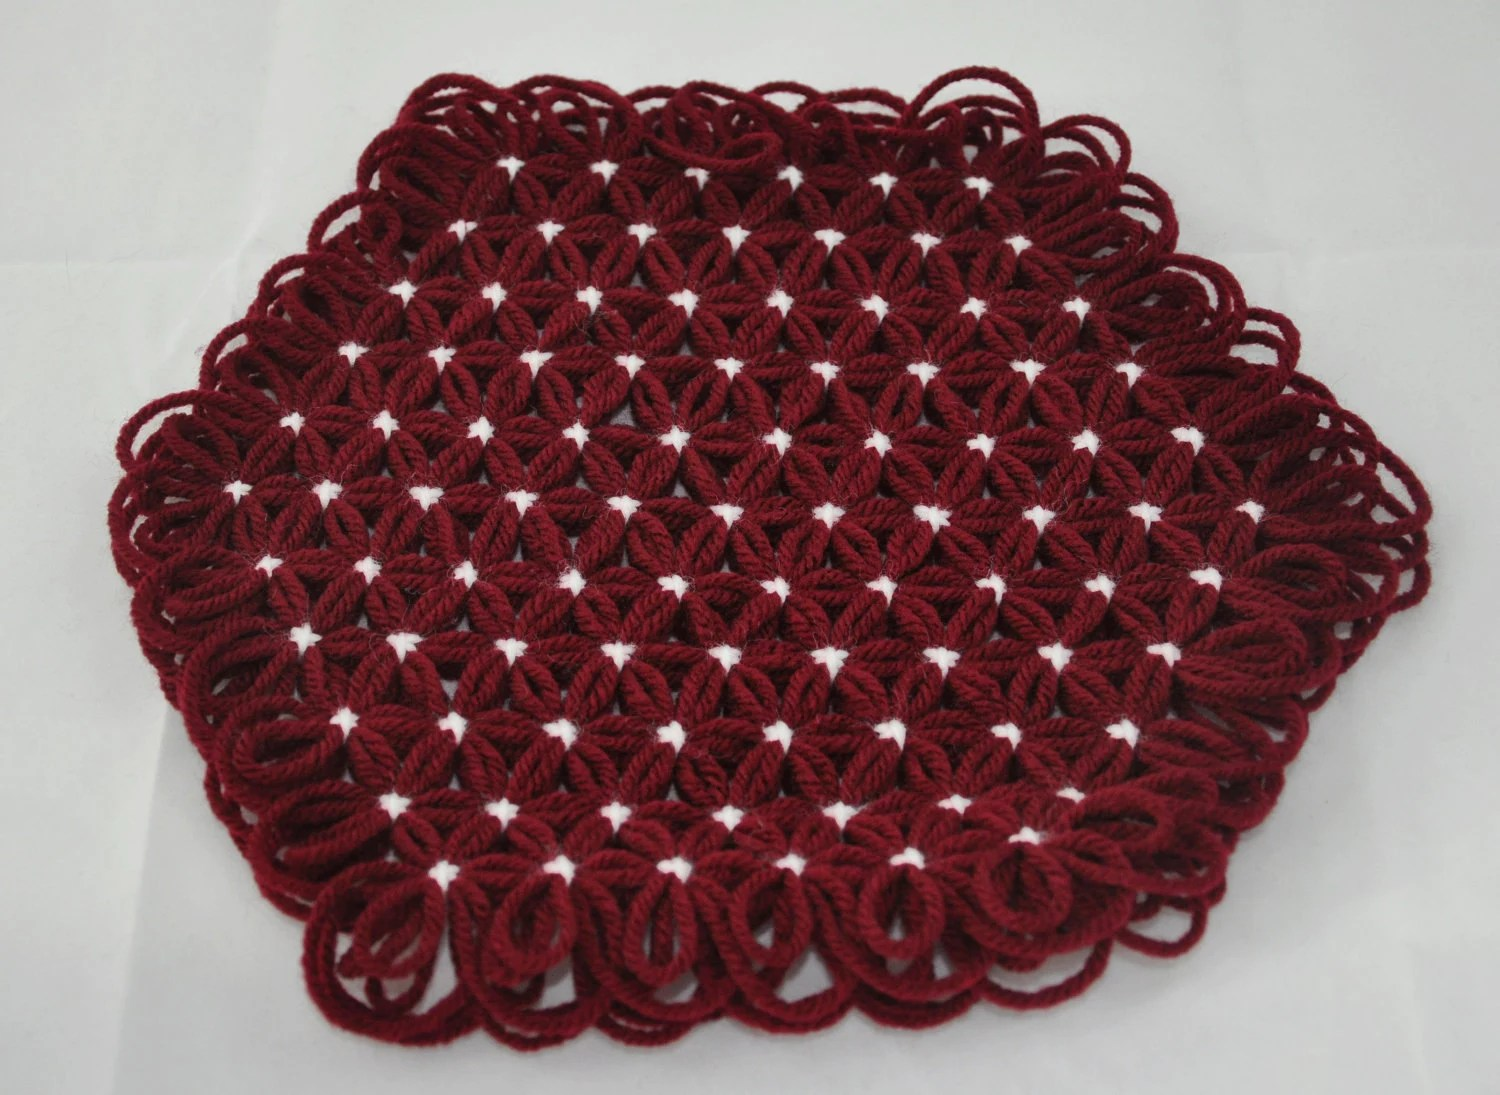 Small Trivet in 3 Layers of Maroon Yarn with White Ties - Autumn Fall Holiday Colors